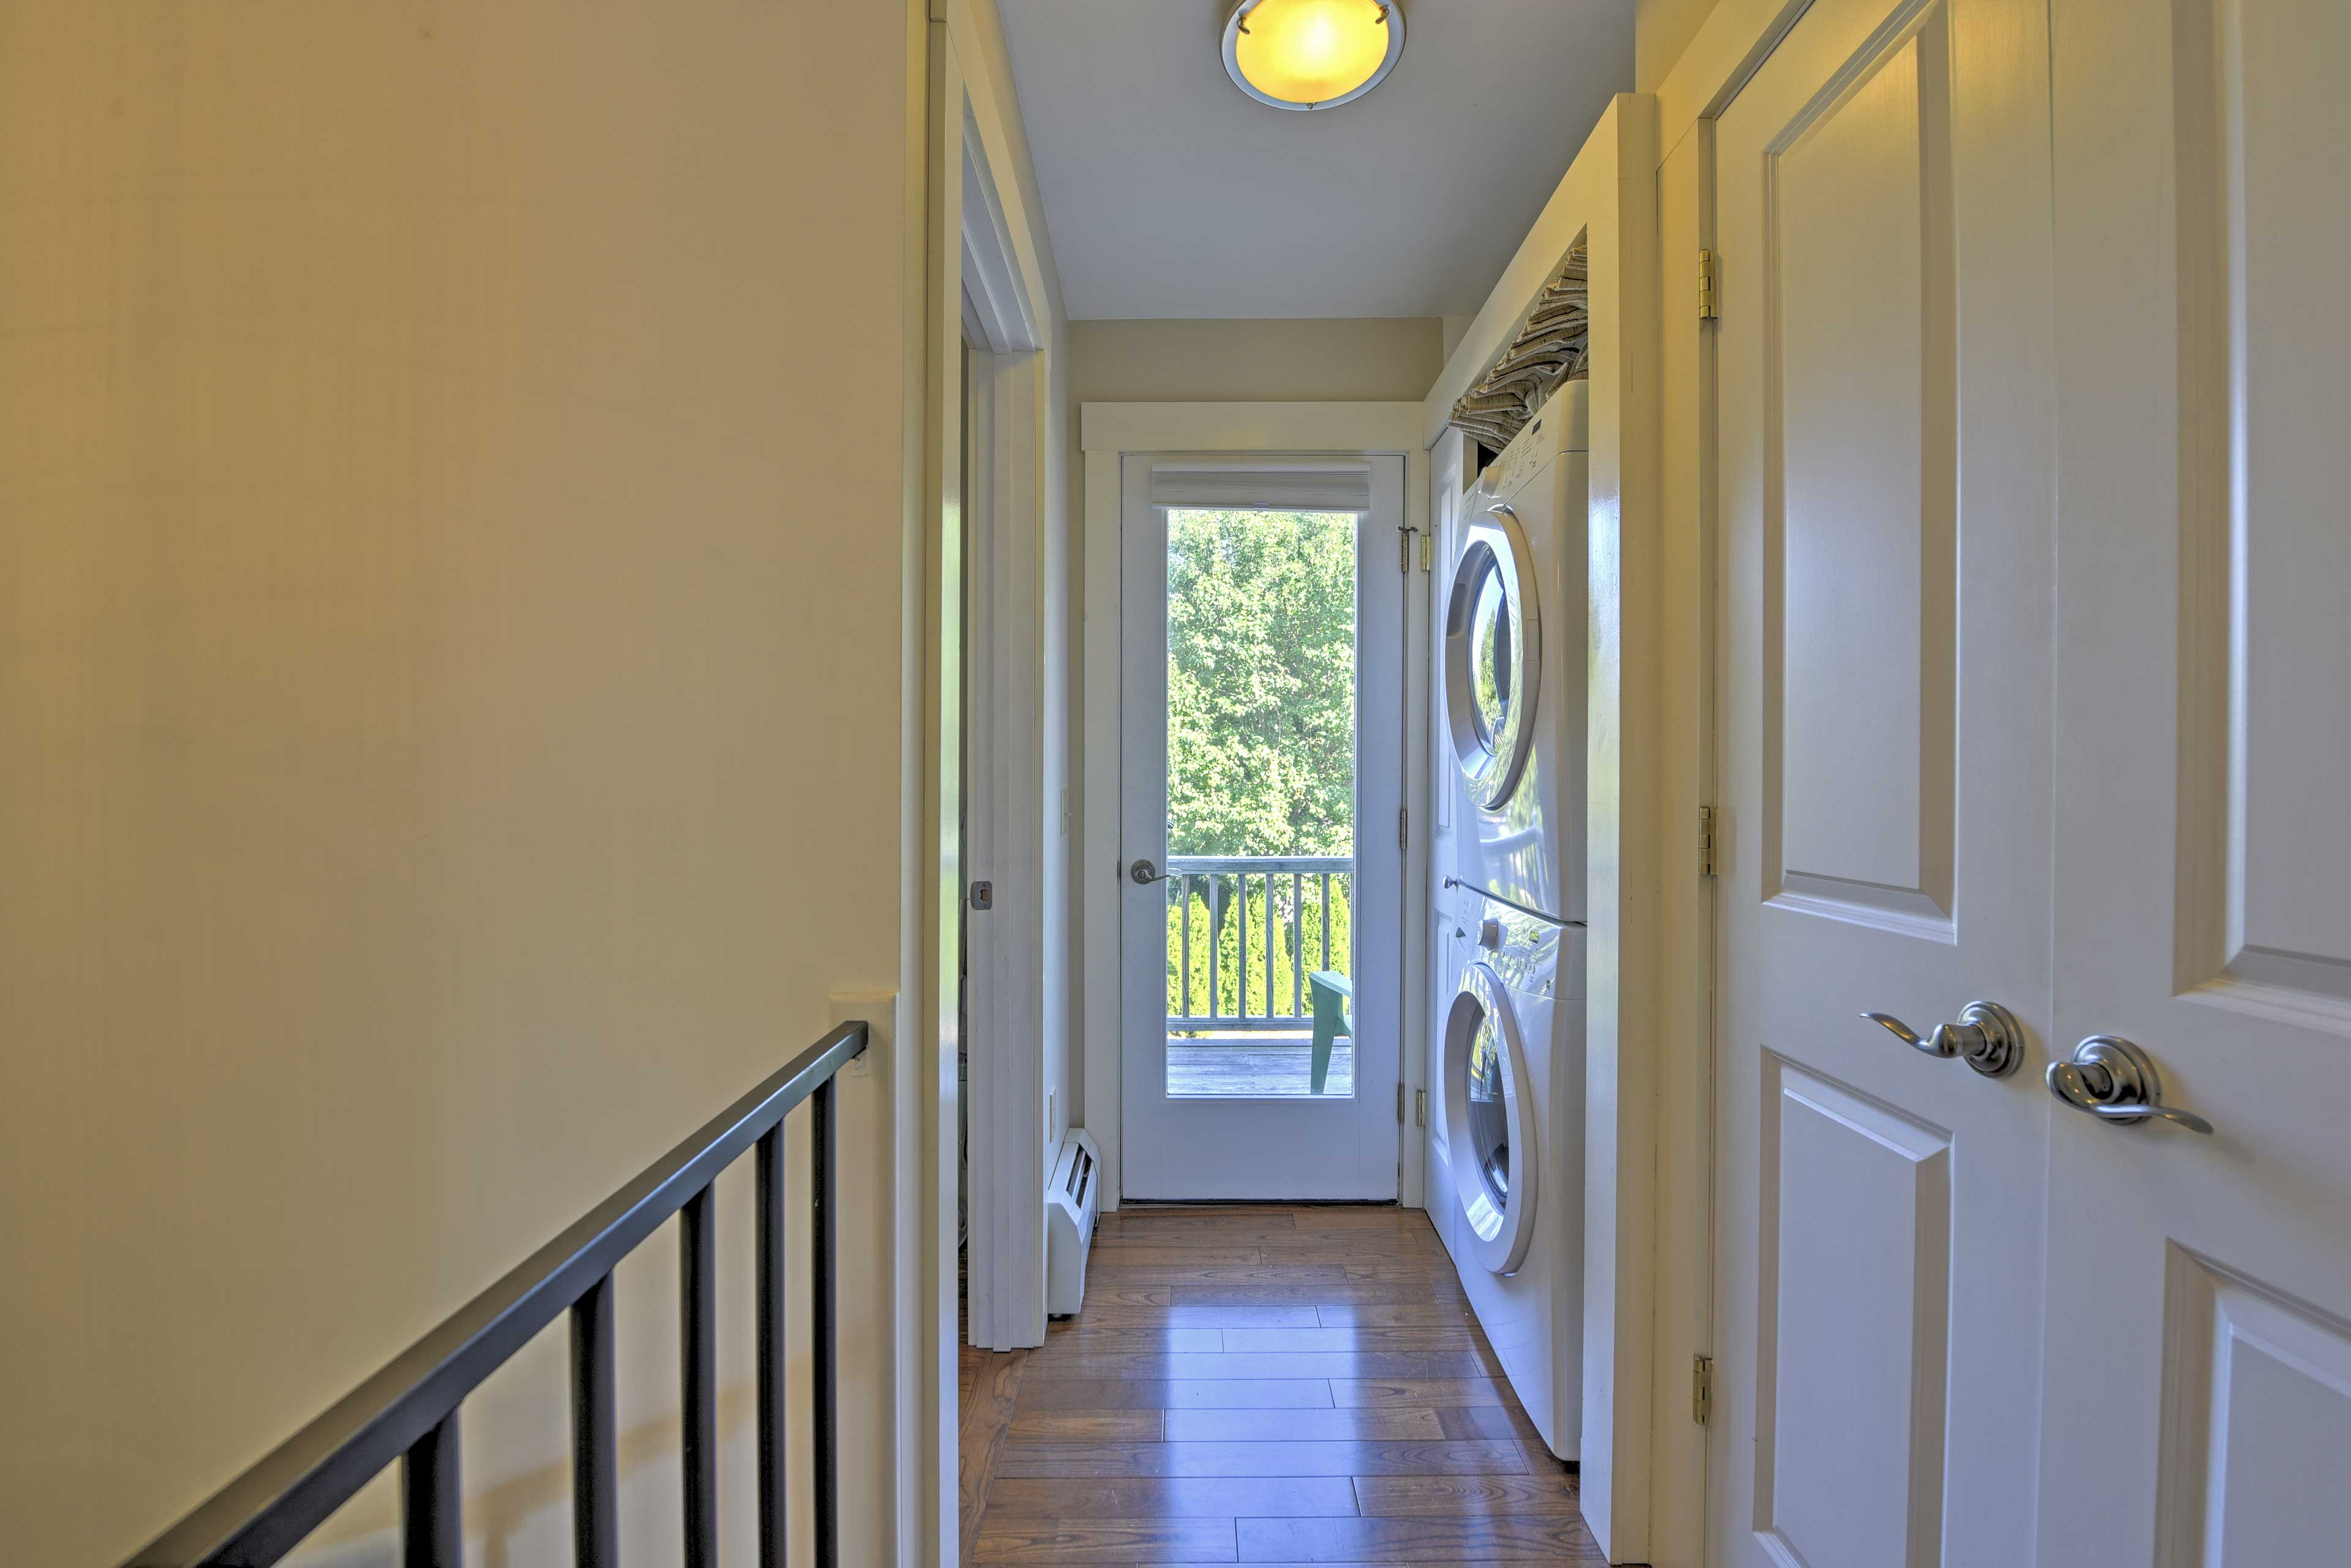 This condo is equipped with in-unit laundry machines.